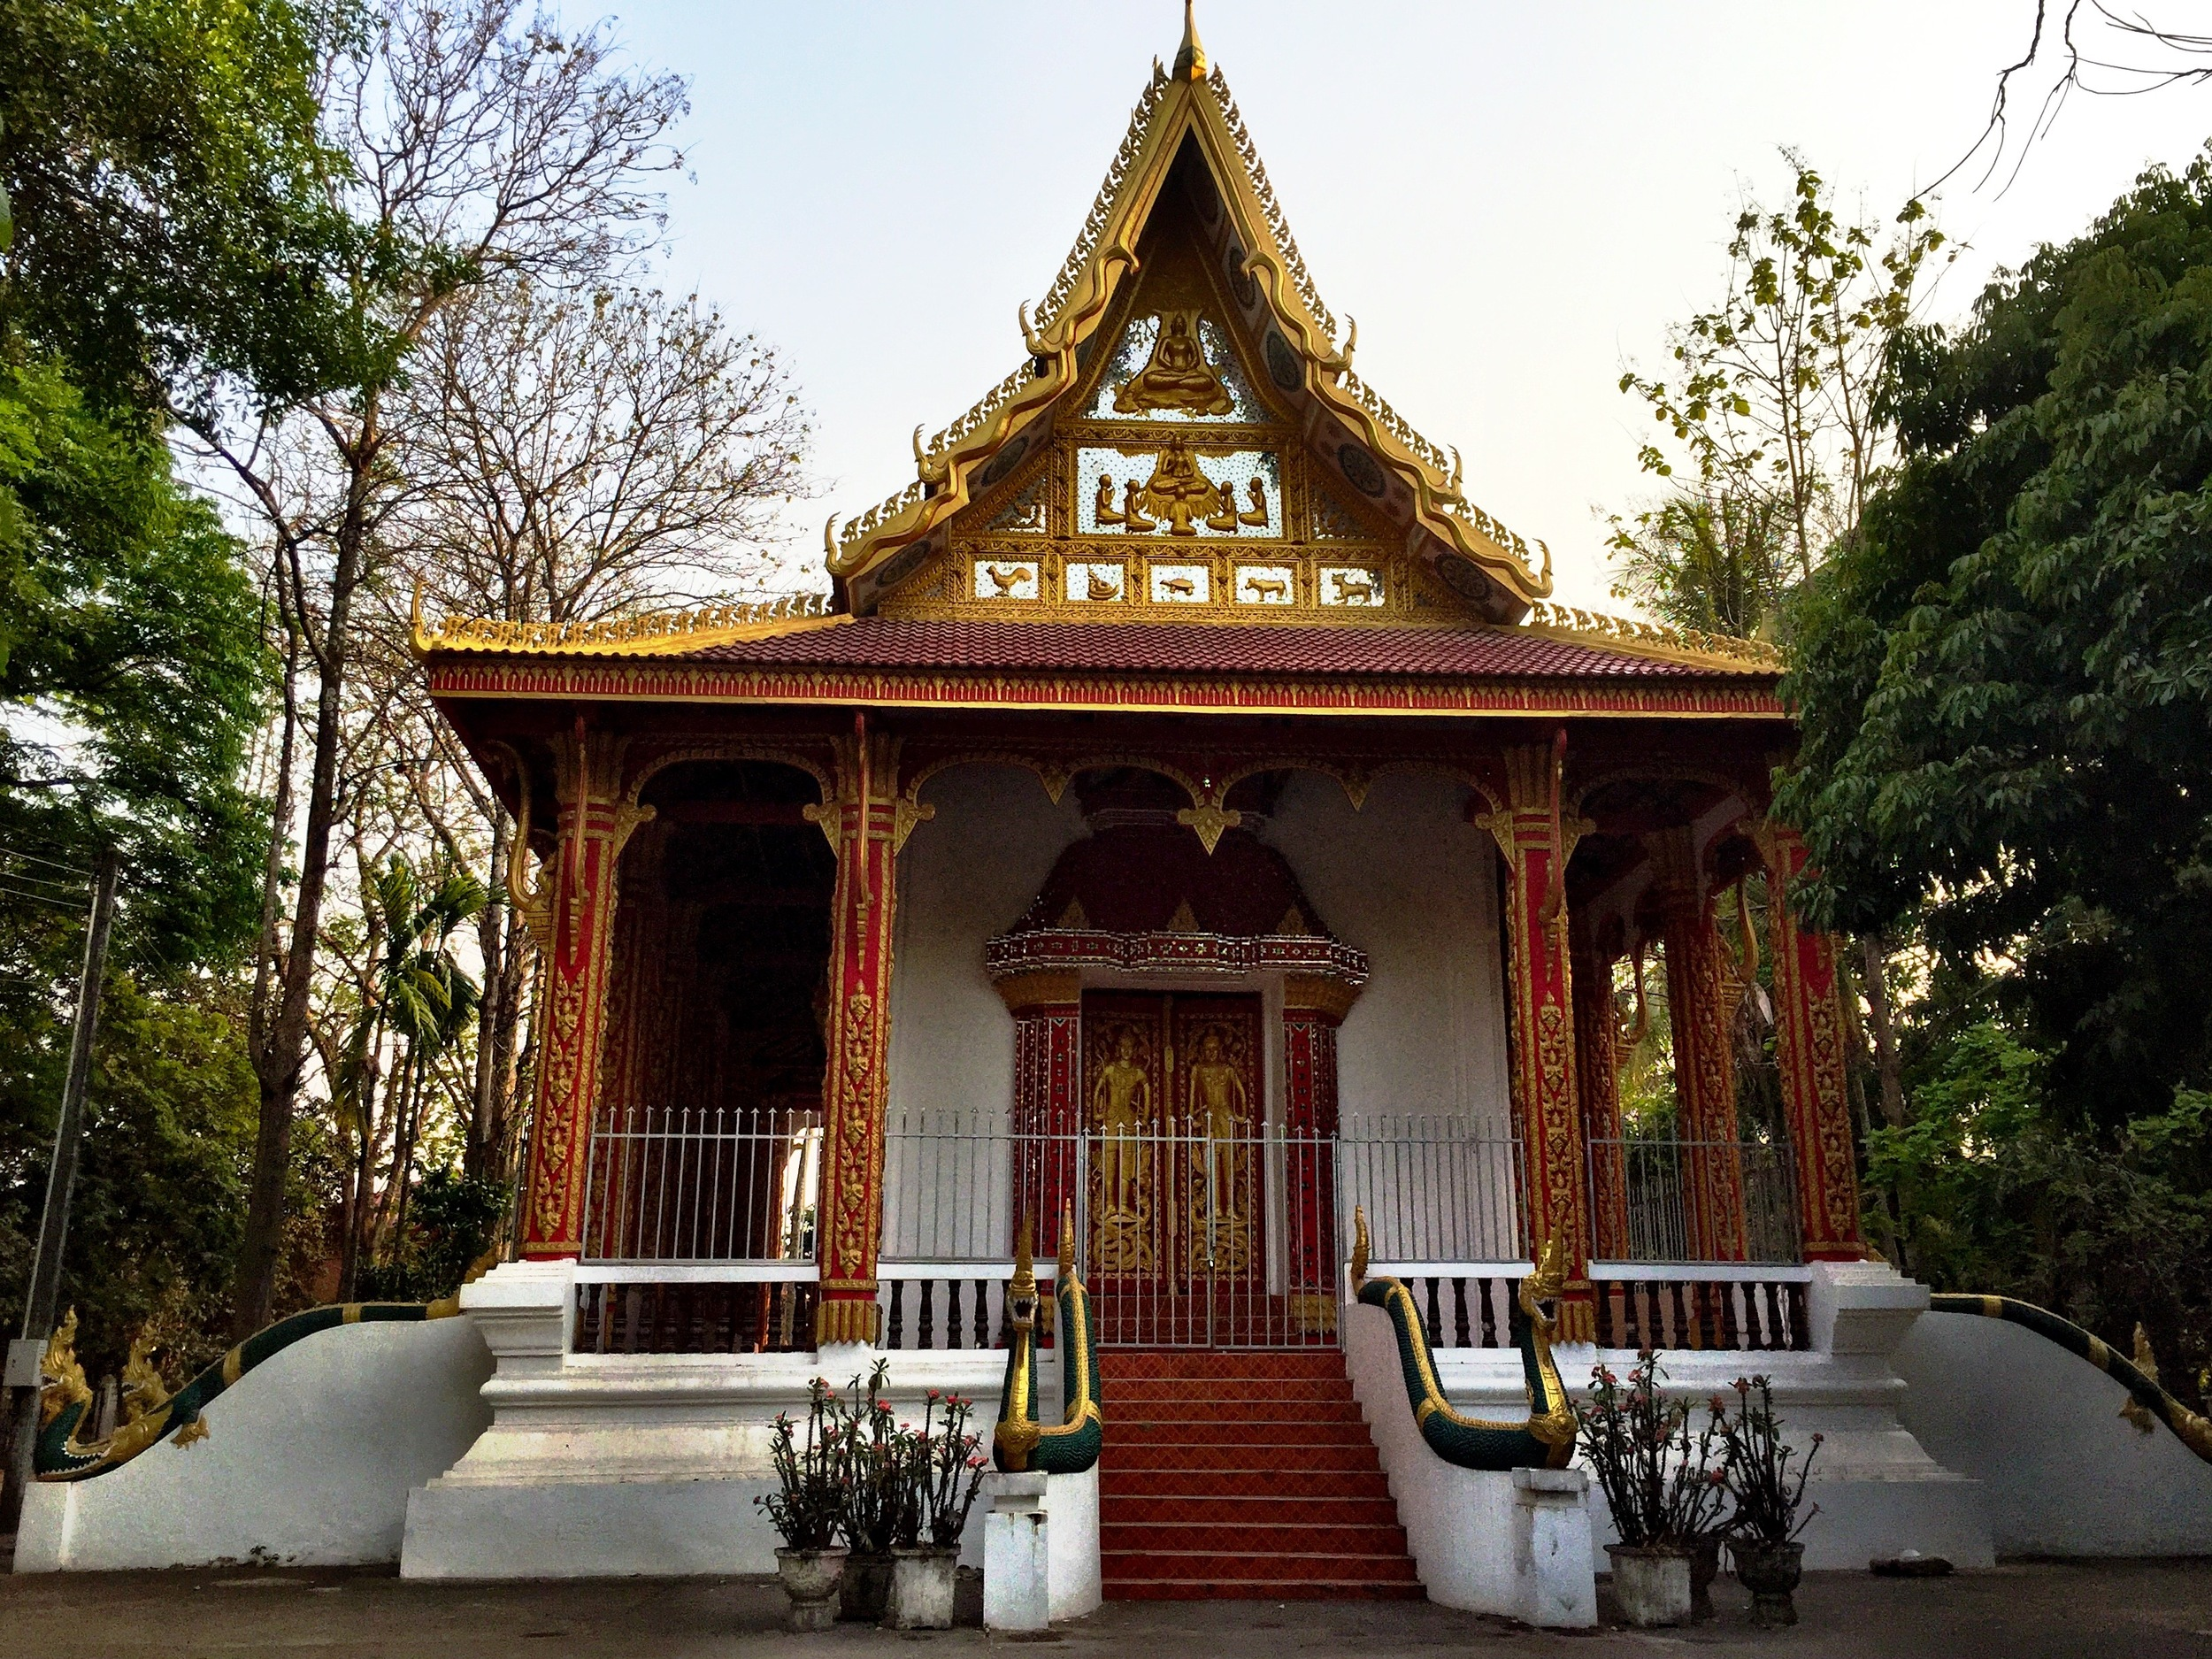 One of the temples in Wat Sakpoluang